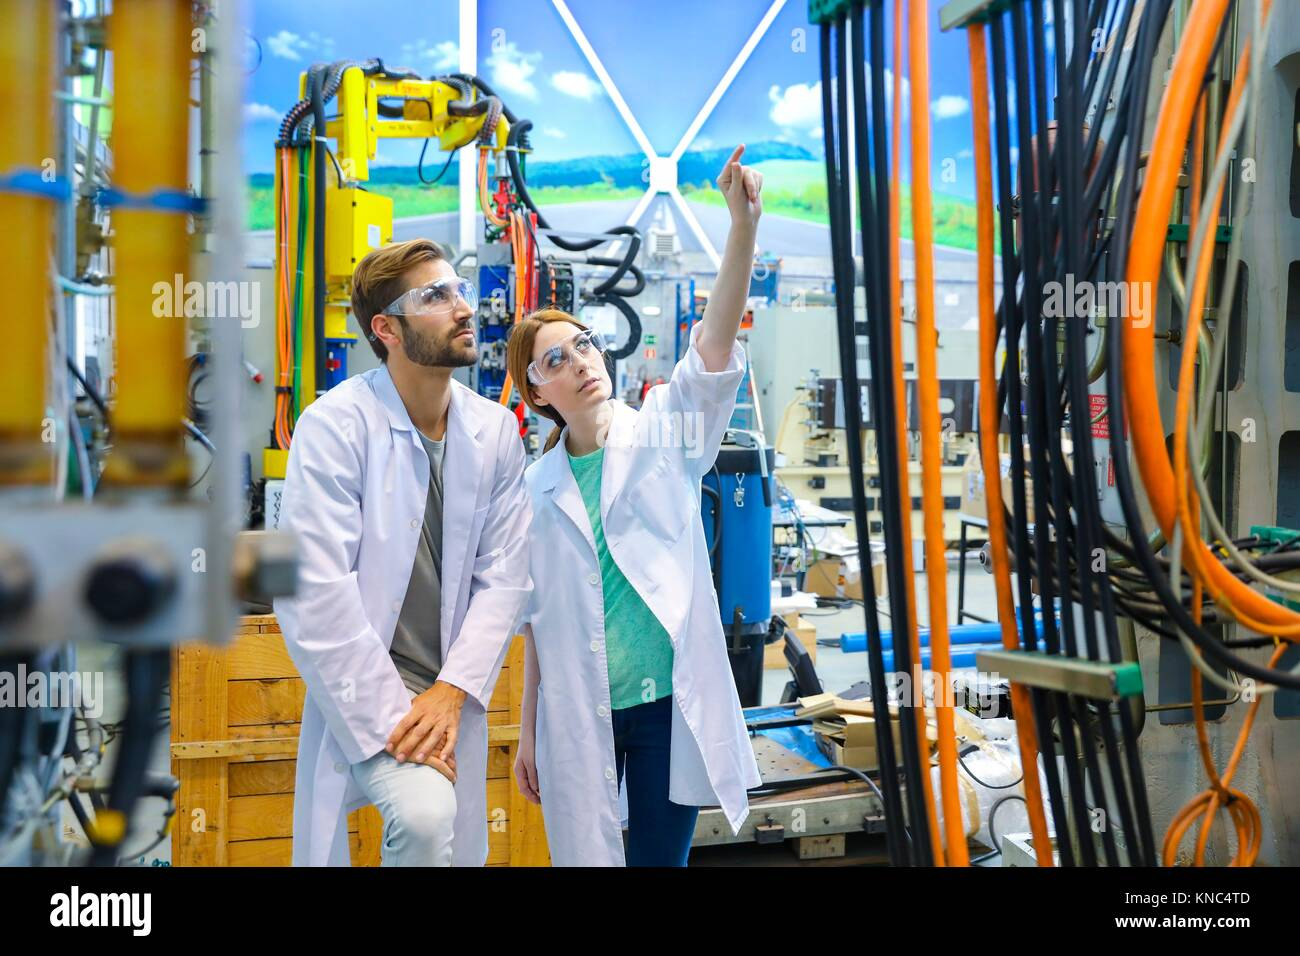 Los investigadores en el centro de mecanizado, industria, Tecnalia Research & Innovation, Technology and Research Foto de stock